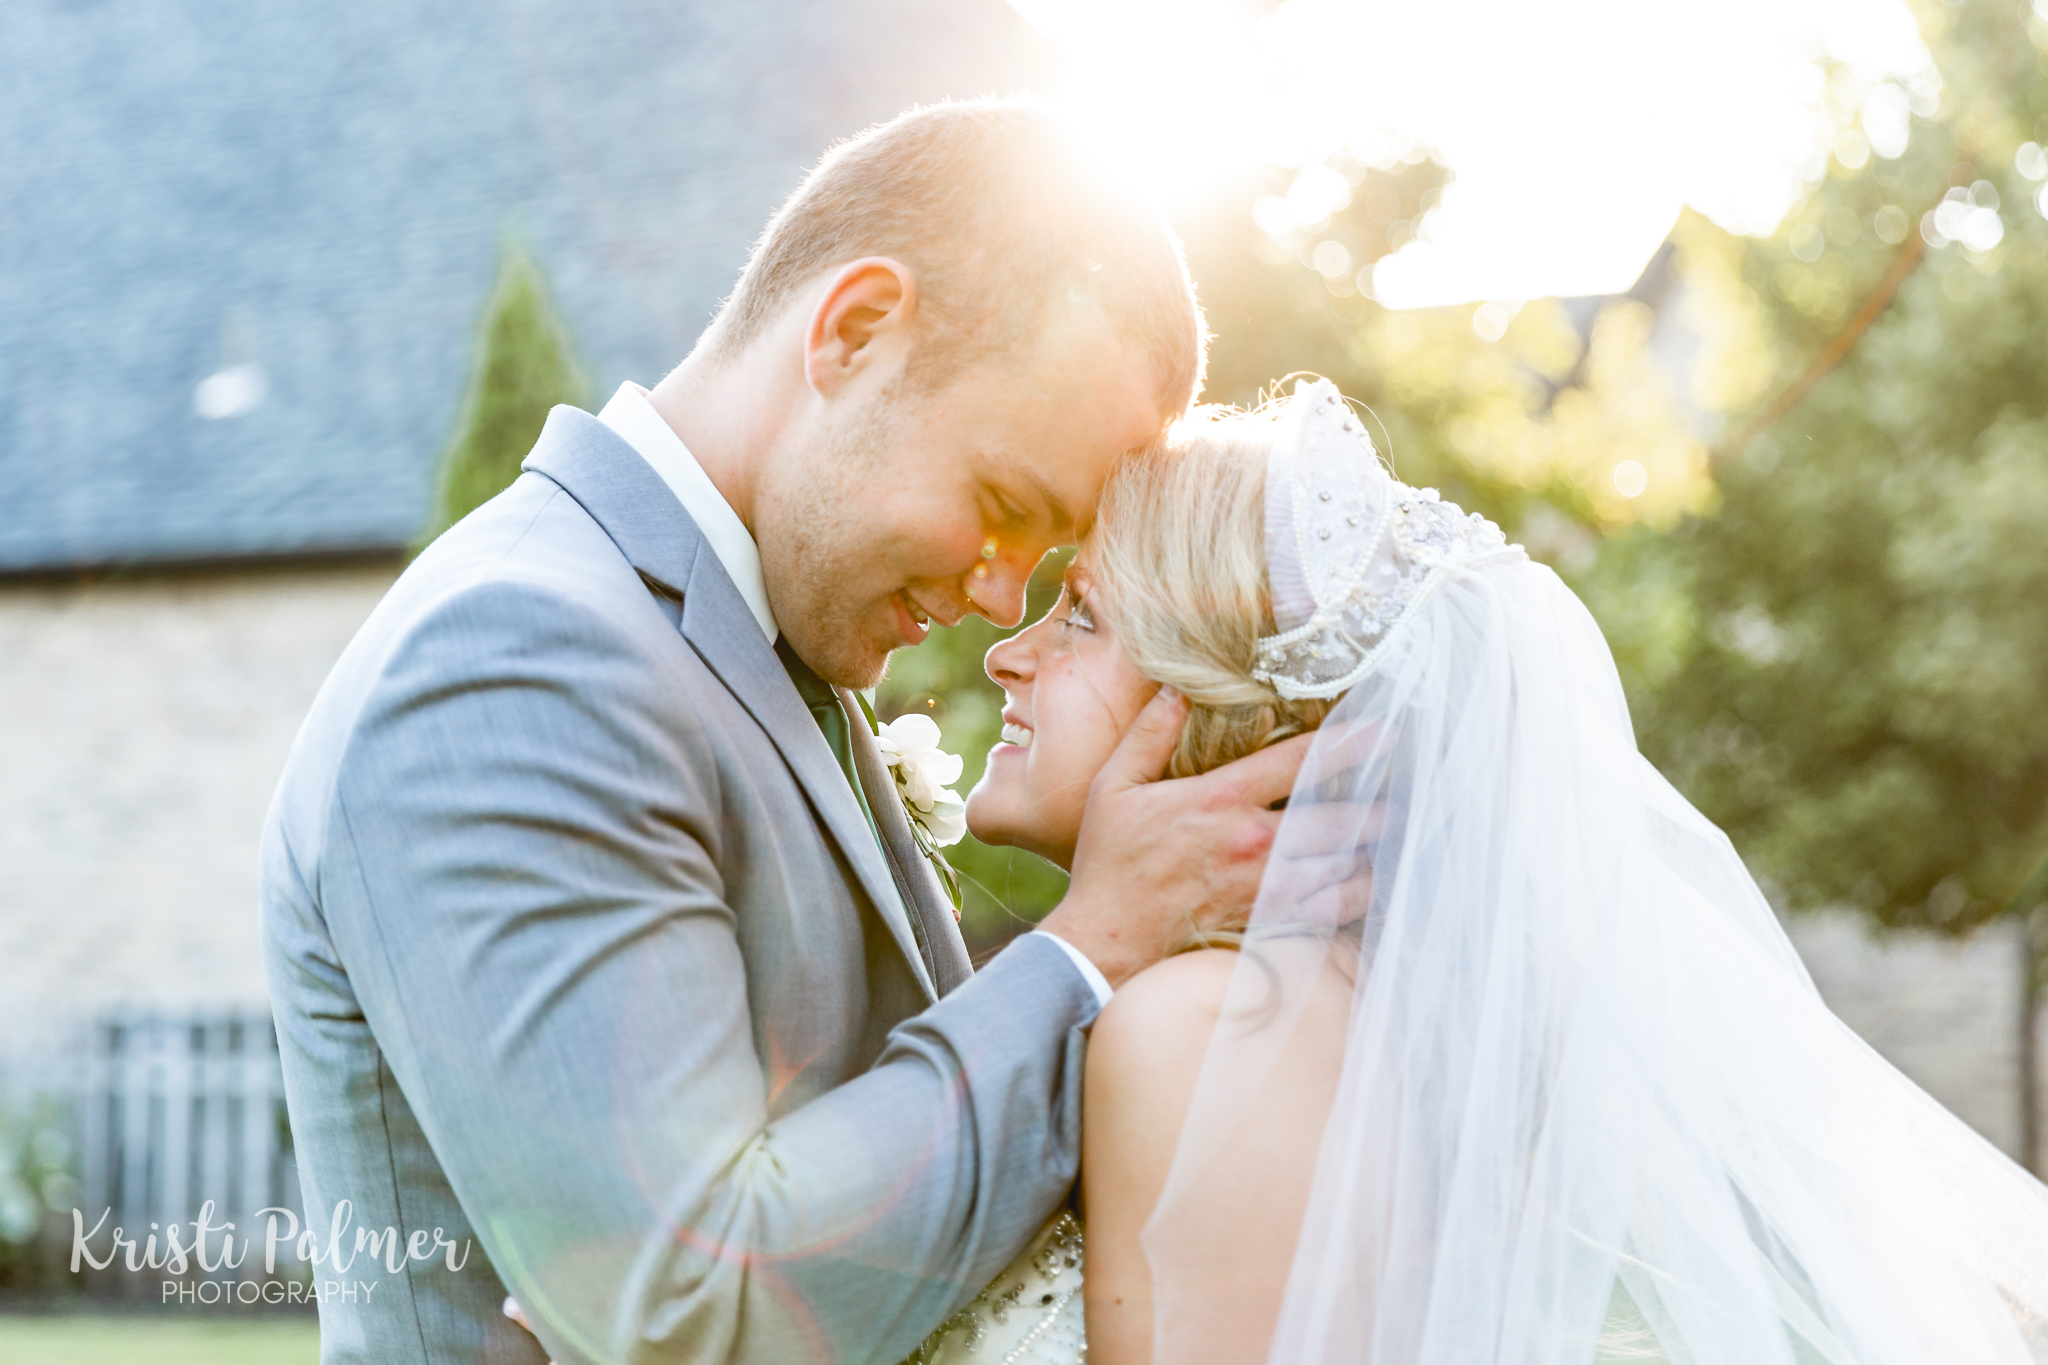 BarretWeddingSM-231.jpg